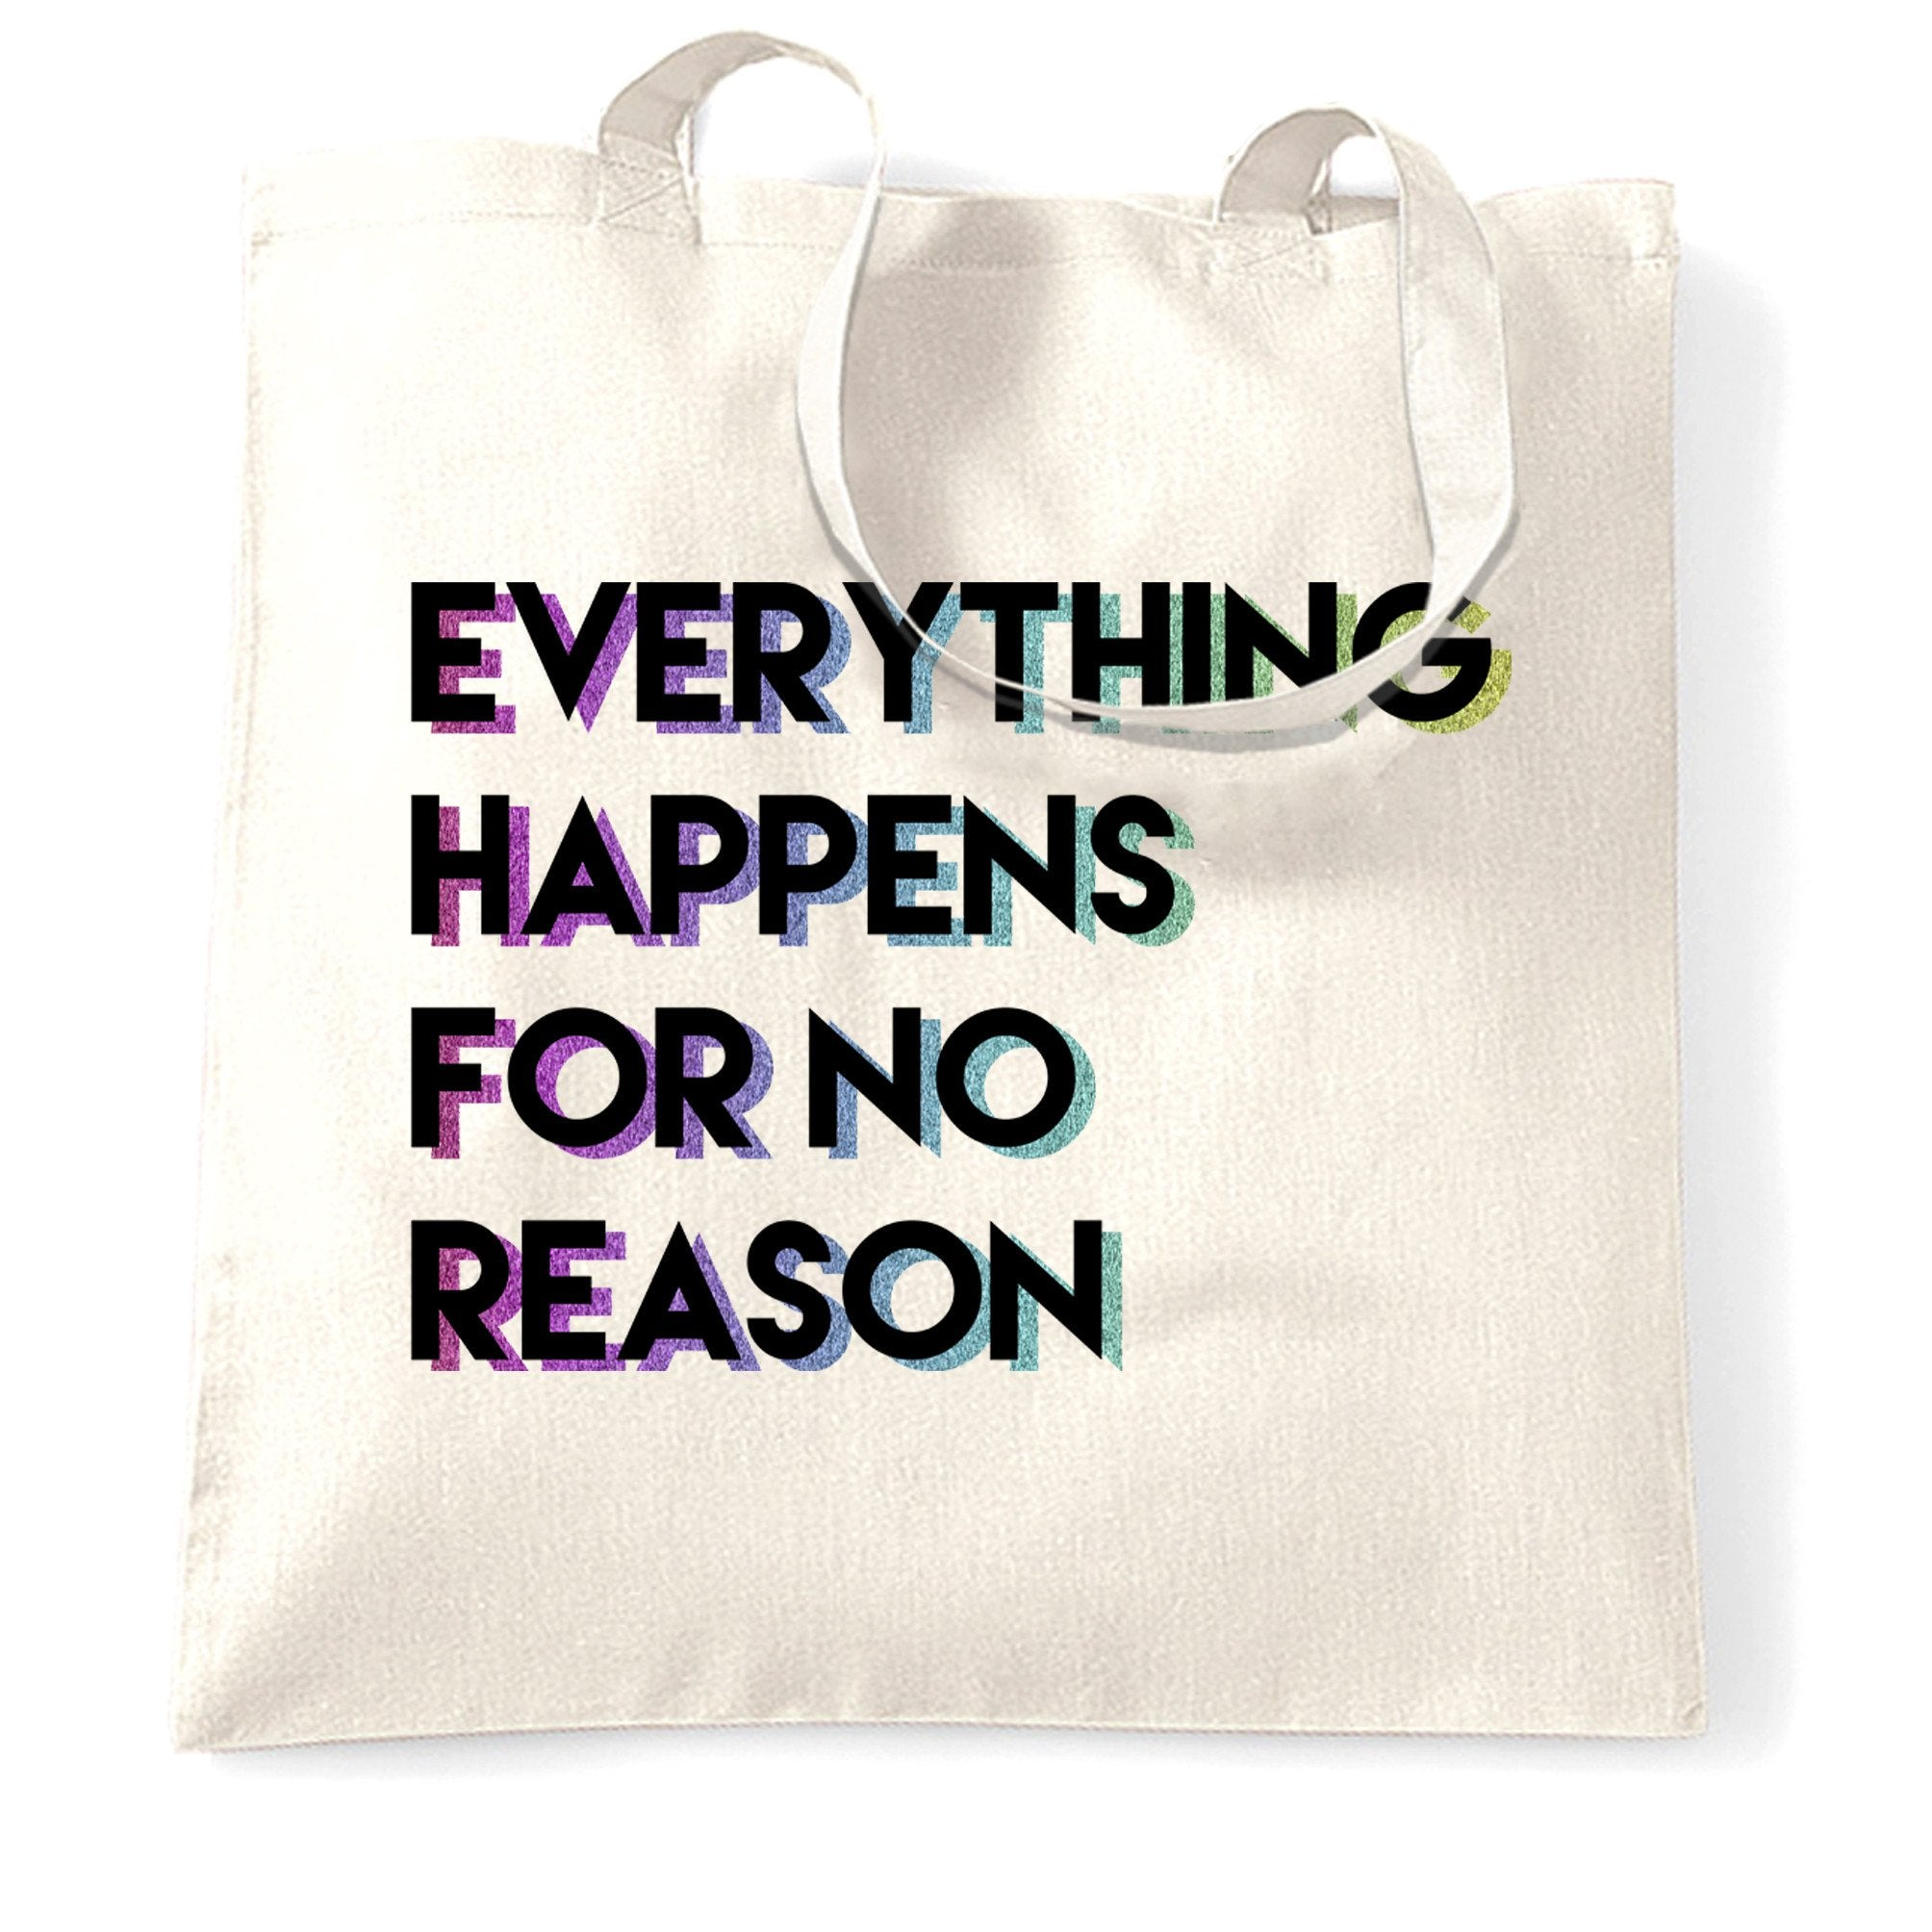 Joke Tote Bag Everything Happens For No Reason Slogan